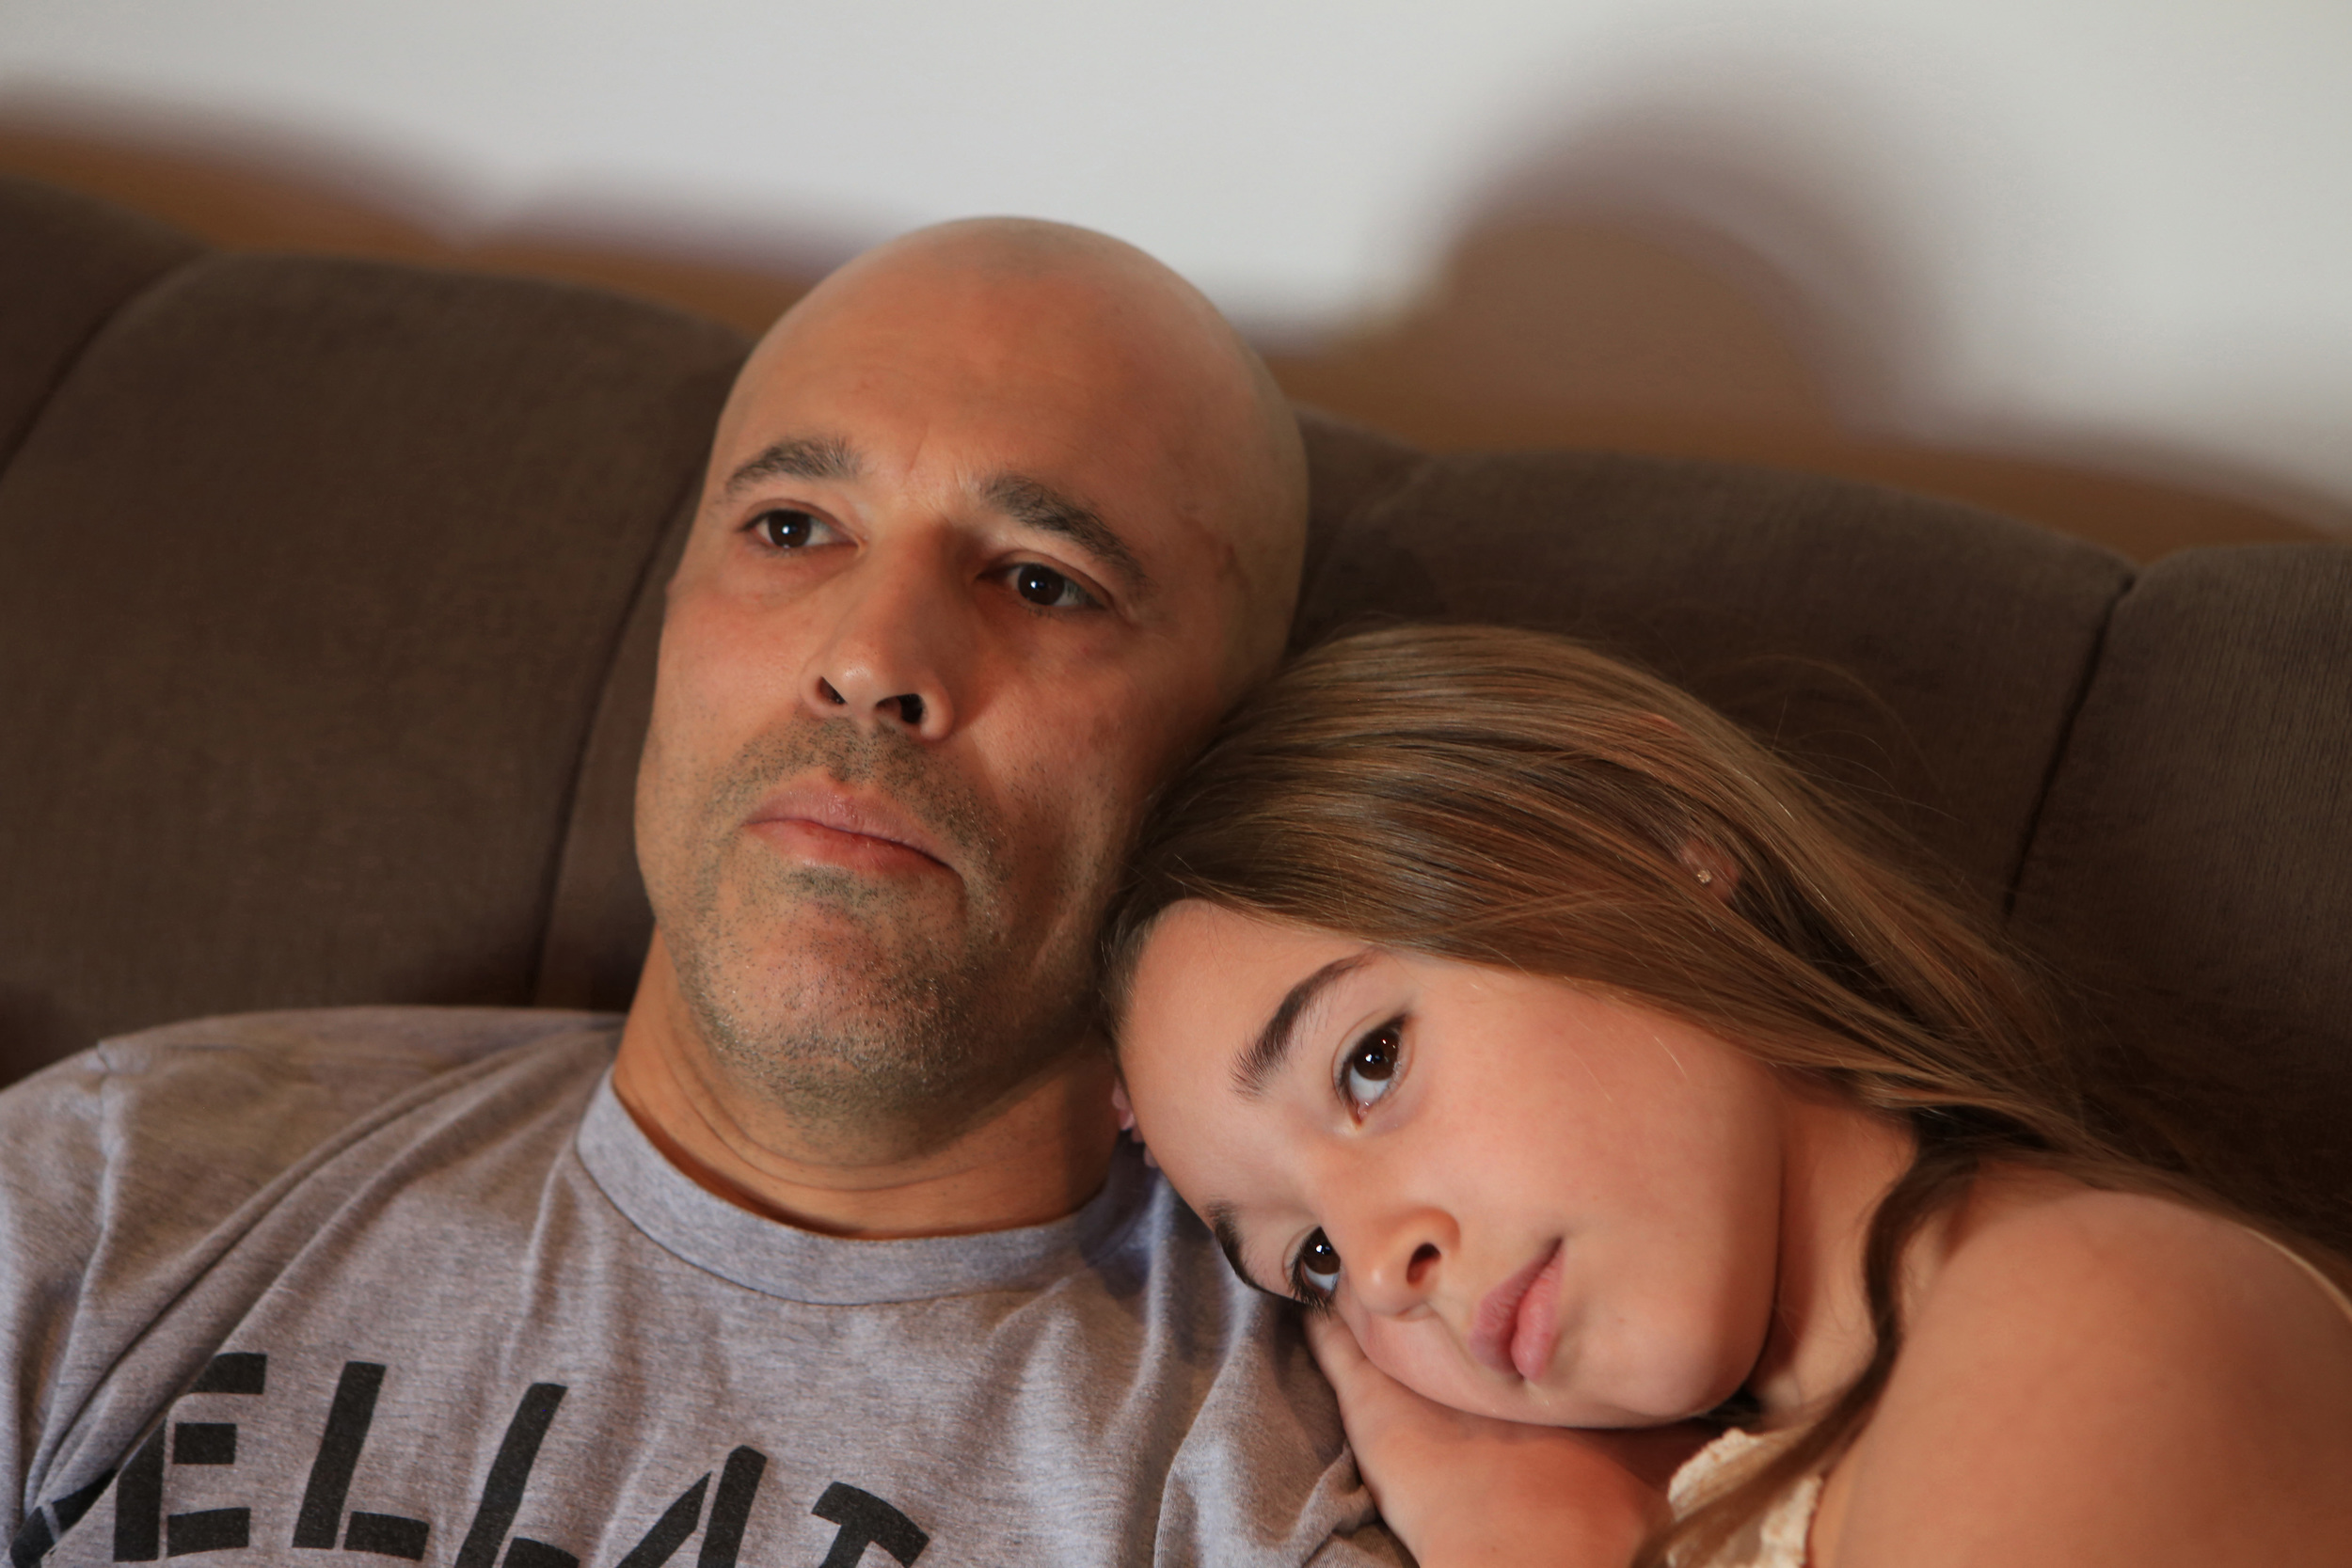 Royce Gracie, father and professional mixed martial artist for Bellator MMA, left, watches early morning television with his 10-year-old daughter, Kharianna, right, after packing her lunch, fixing her breakfast and before taking her to school at their home in Palos Verdes Estates, CA. (©Gail Fisher for ESPN)